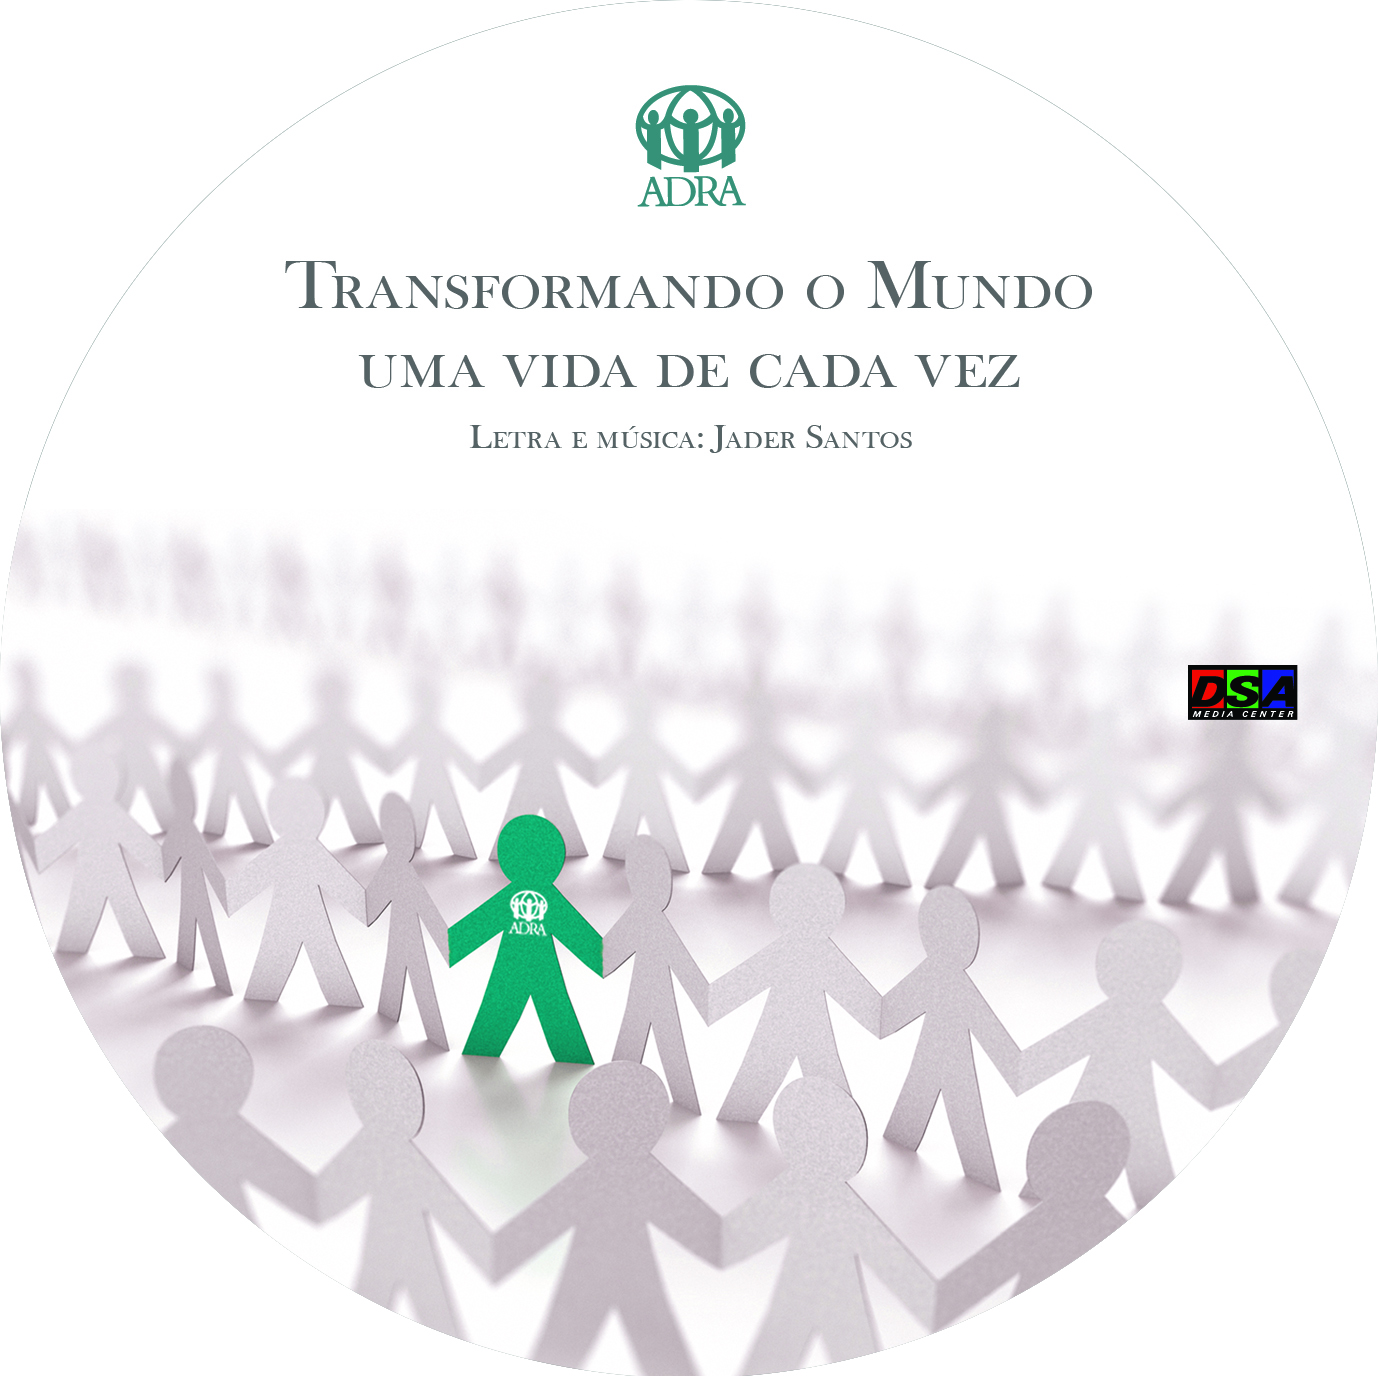 ADRA - Transformando o Mundo (Label)